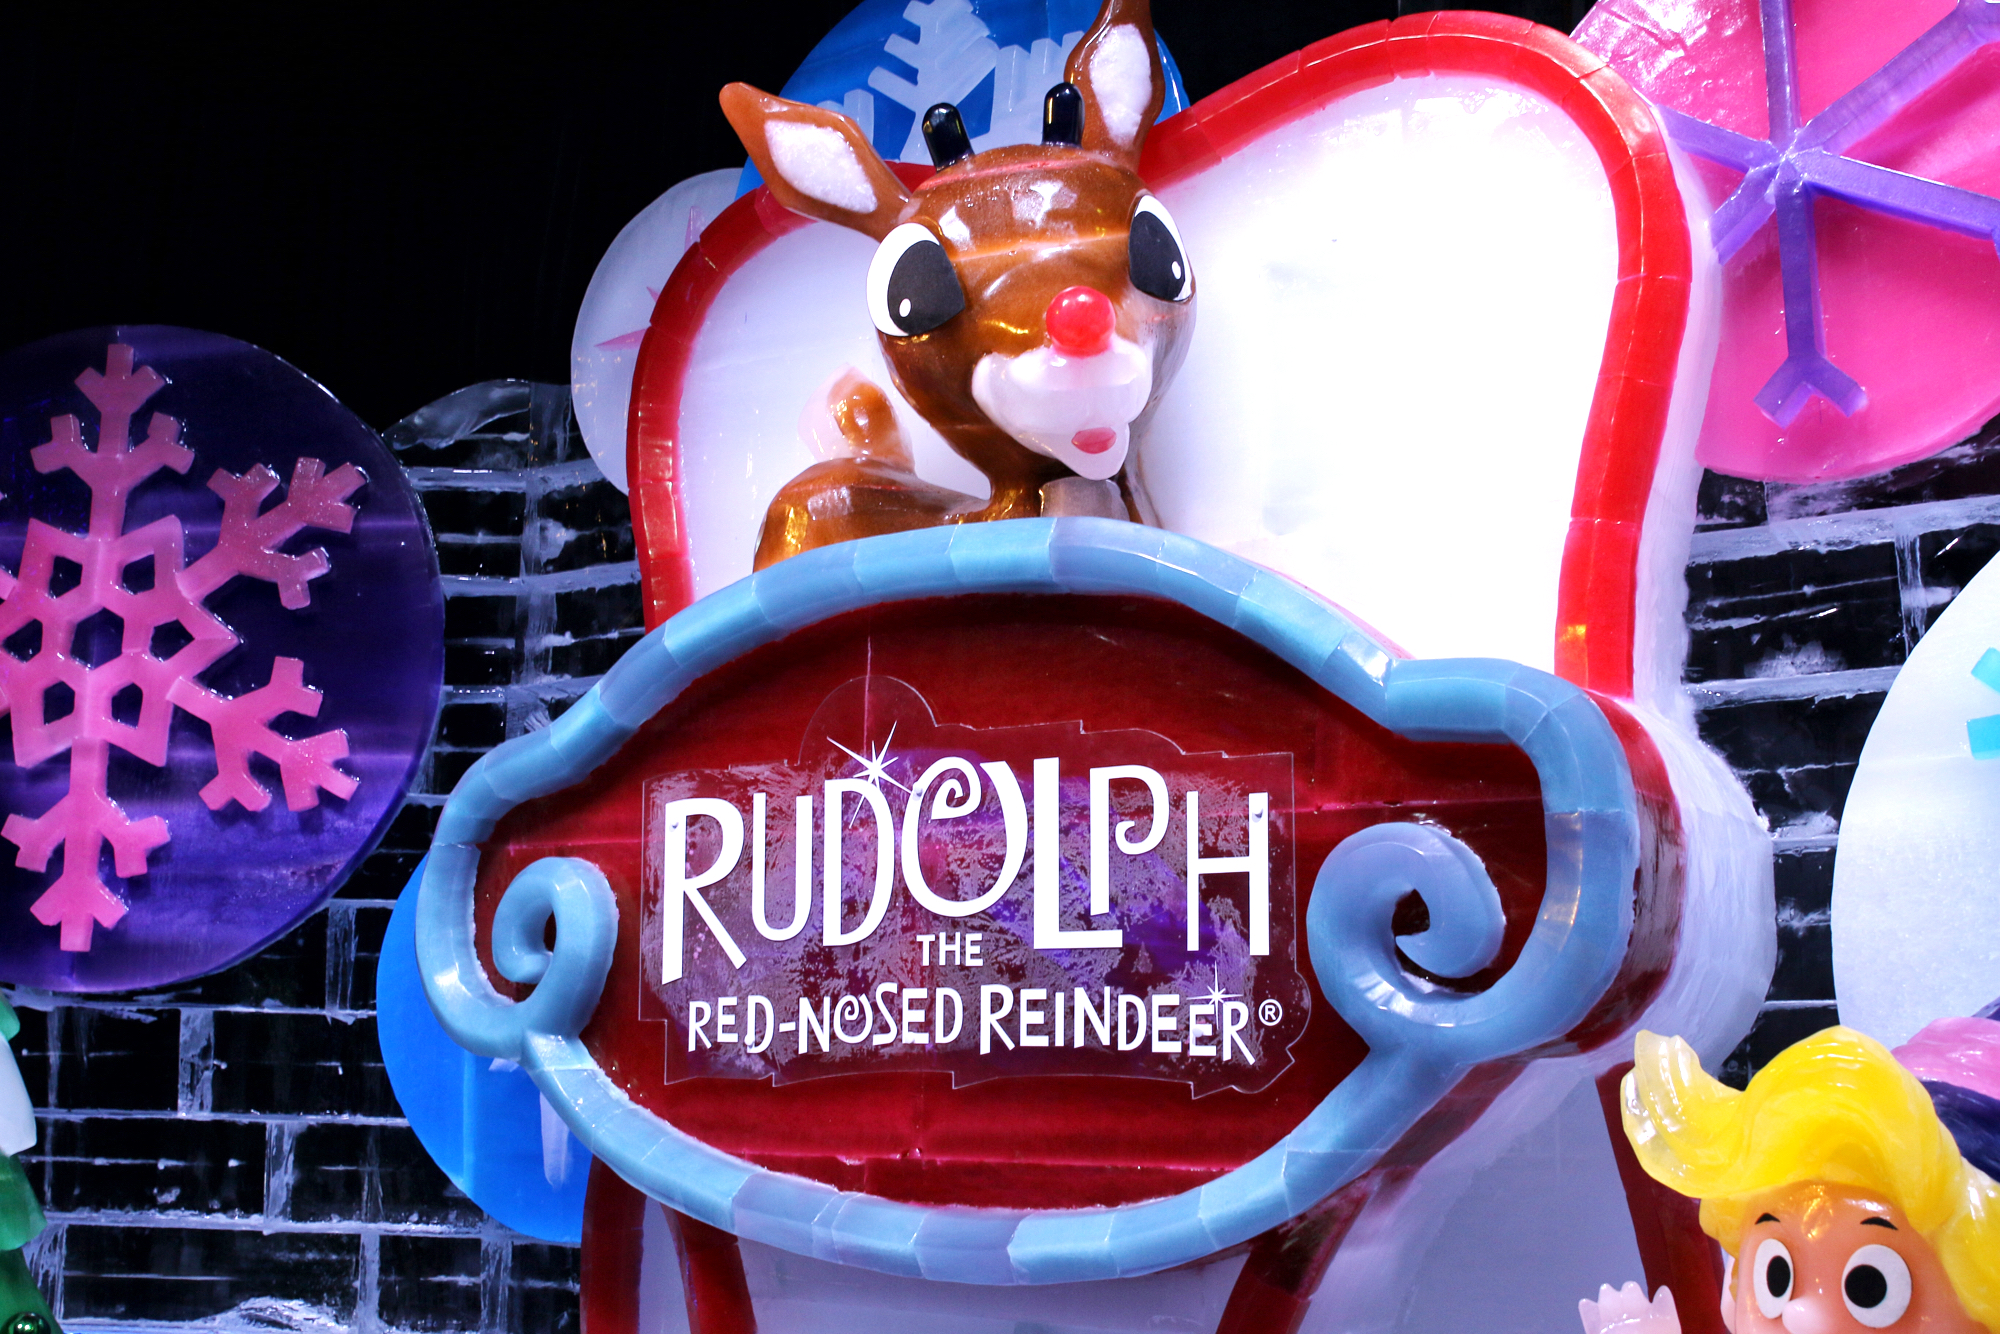 Rudolph the red-nosed reindeer at ice